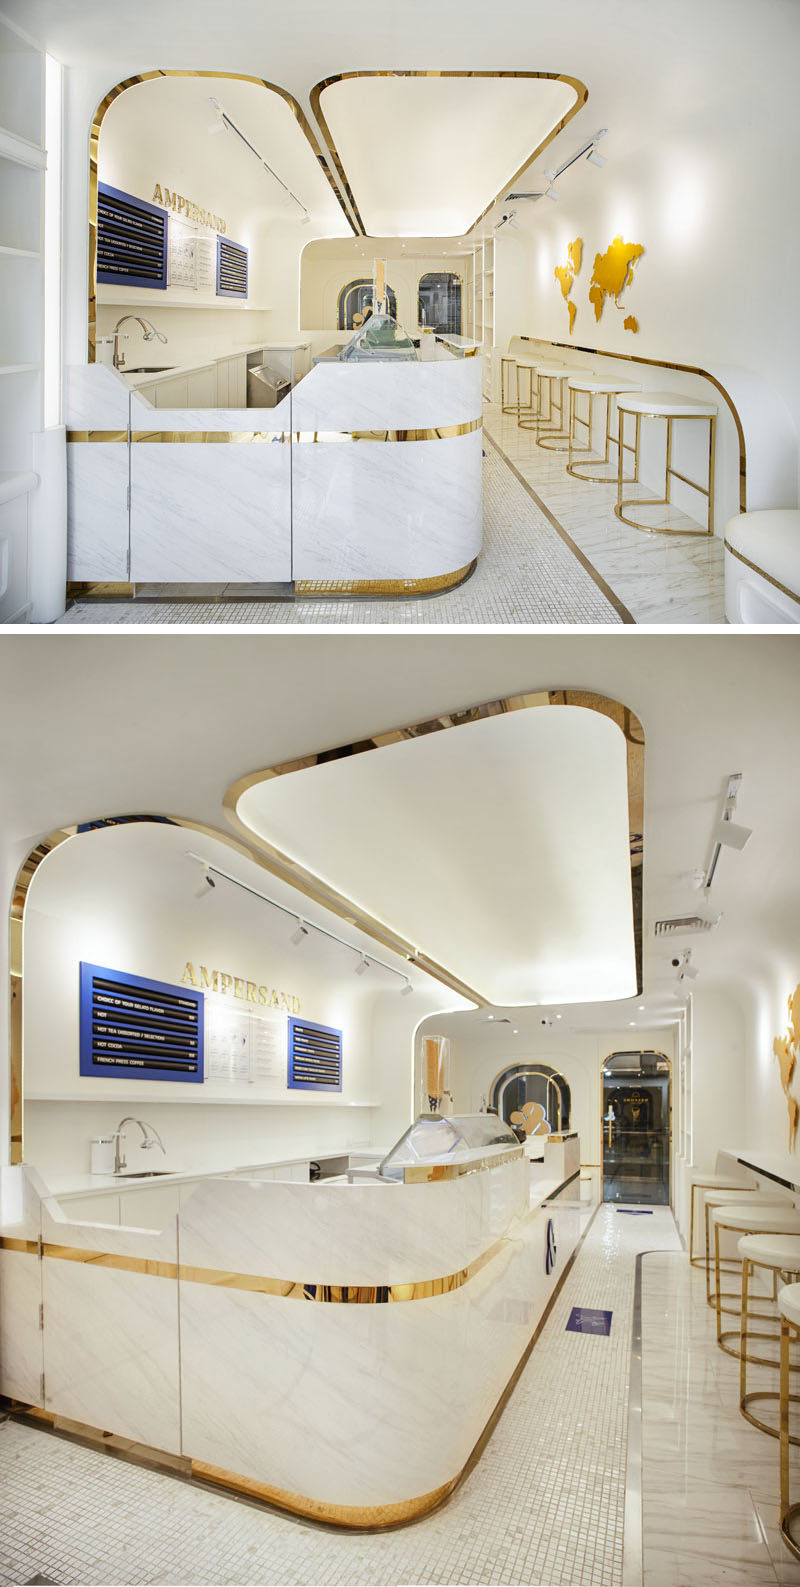 This modern gelato boutique features white and navy blue, with touches of gold to add elegance to the interior. #GelatoBoutique #RetailDesign